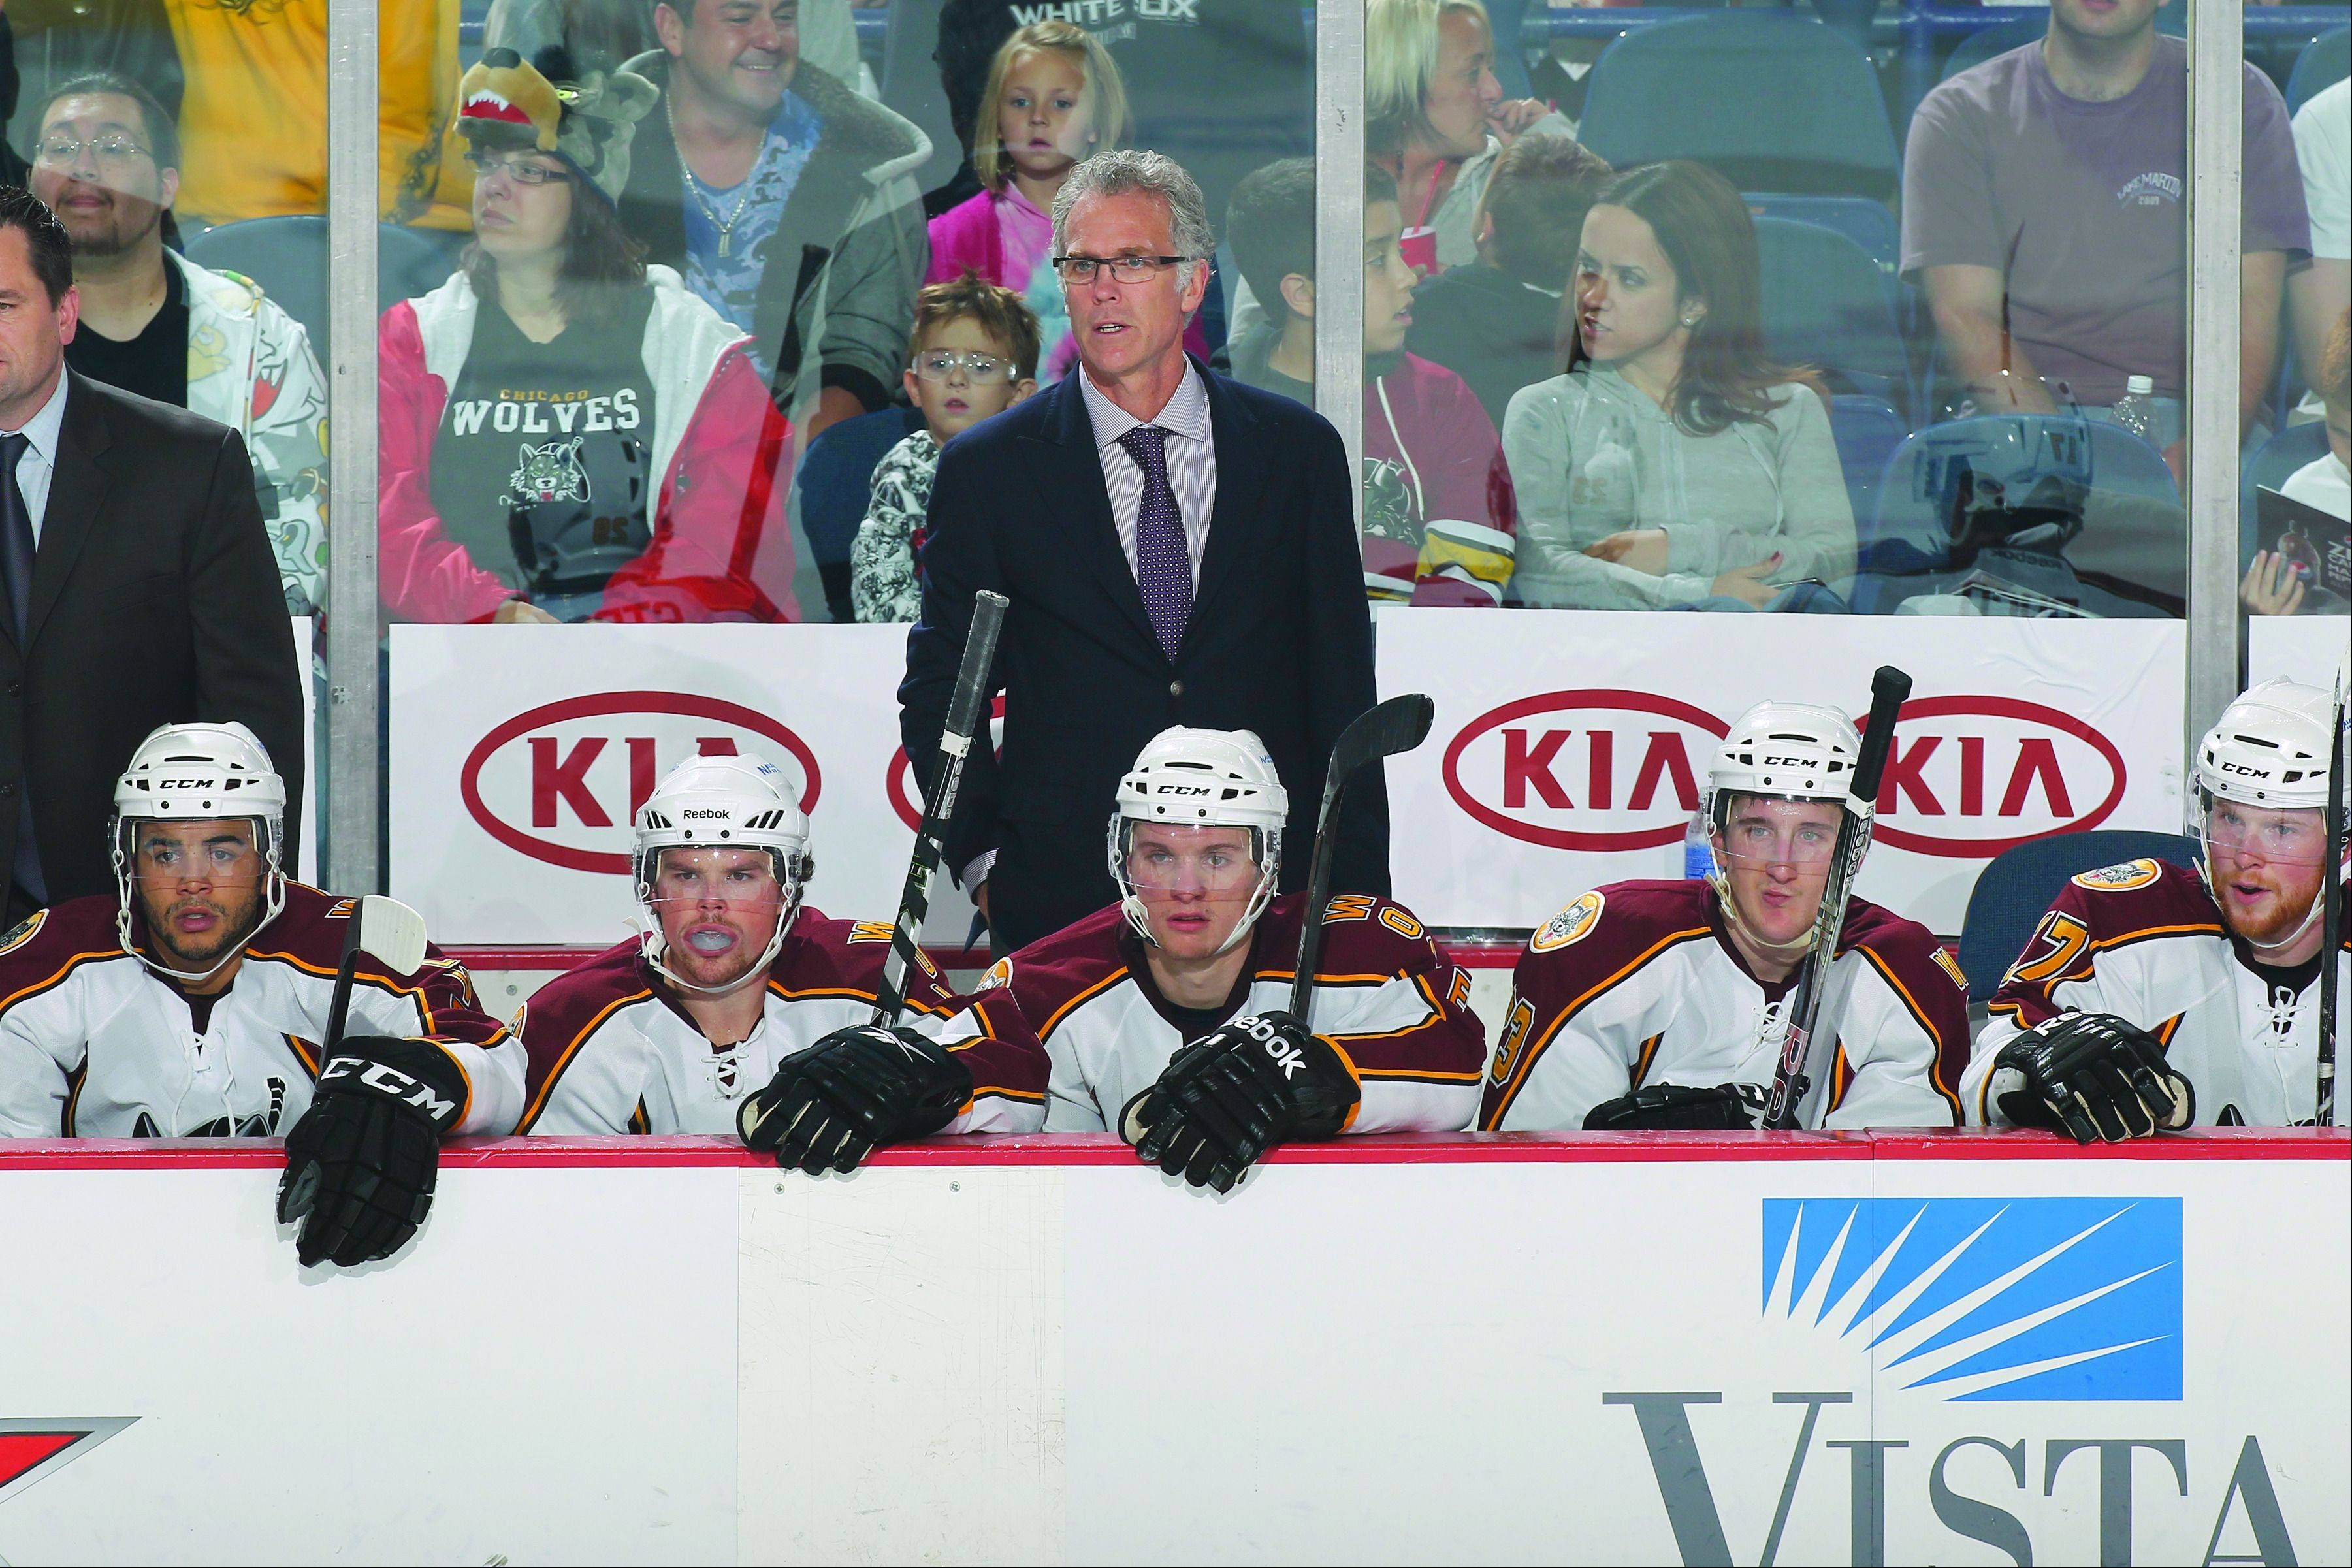 After an extensive career in the NHL, Wolves coach Craig MacTavish says he's enjoying coaching in the AHL. His team is 21-9-8-1 this season with two games at Allstate Arena this weekend against Milwaukee and Grand Rapids.